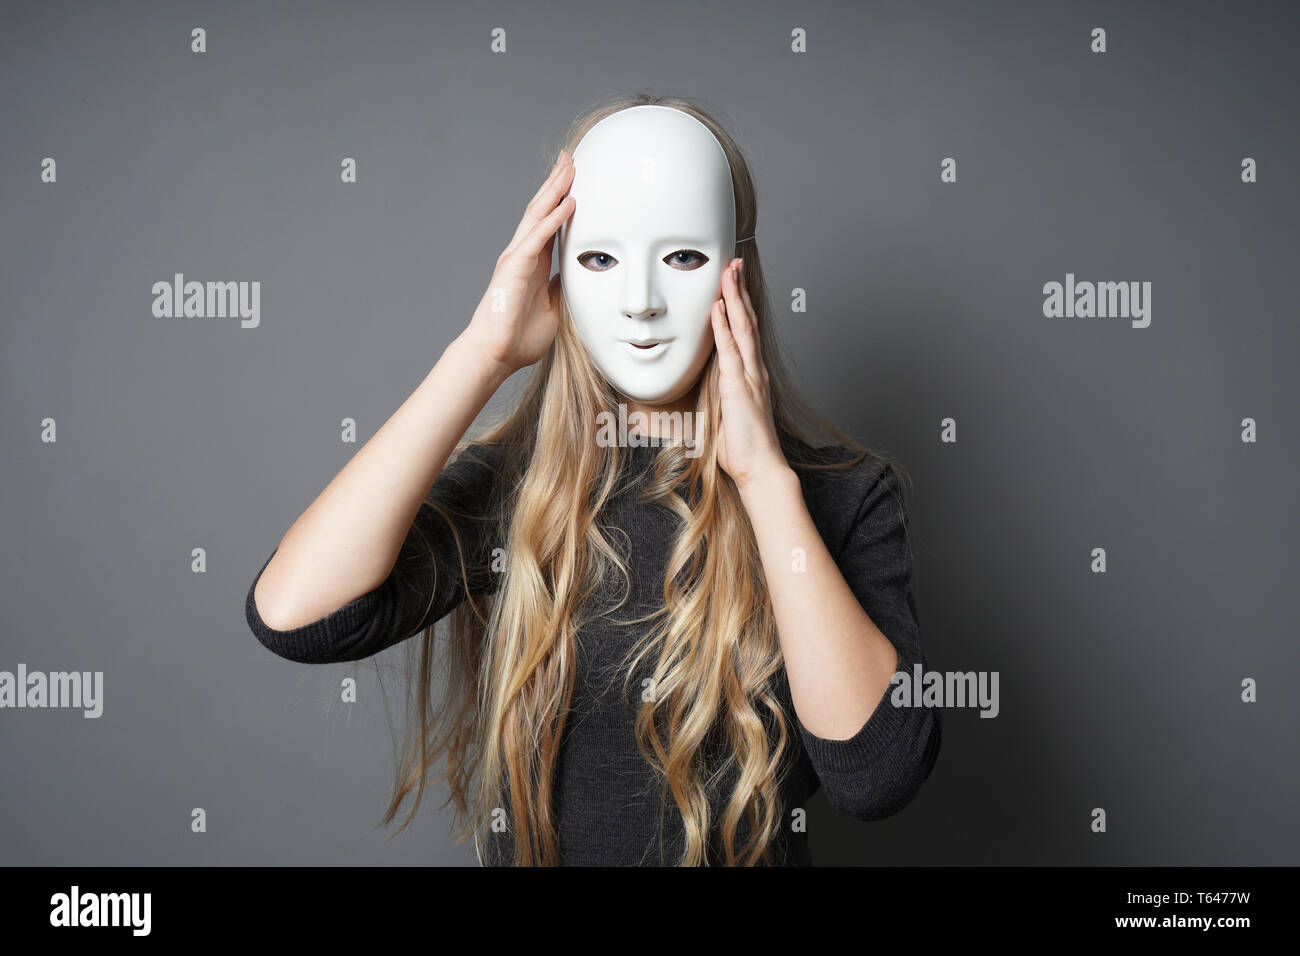 mysterious young woman adjusting her mask with her hands - Stock Image